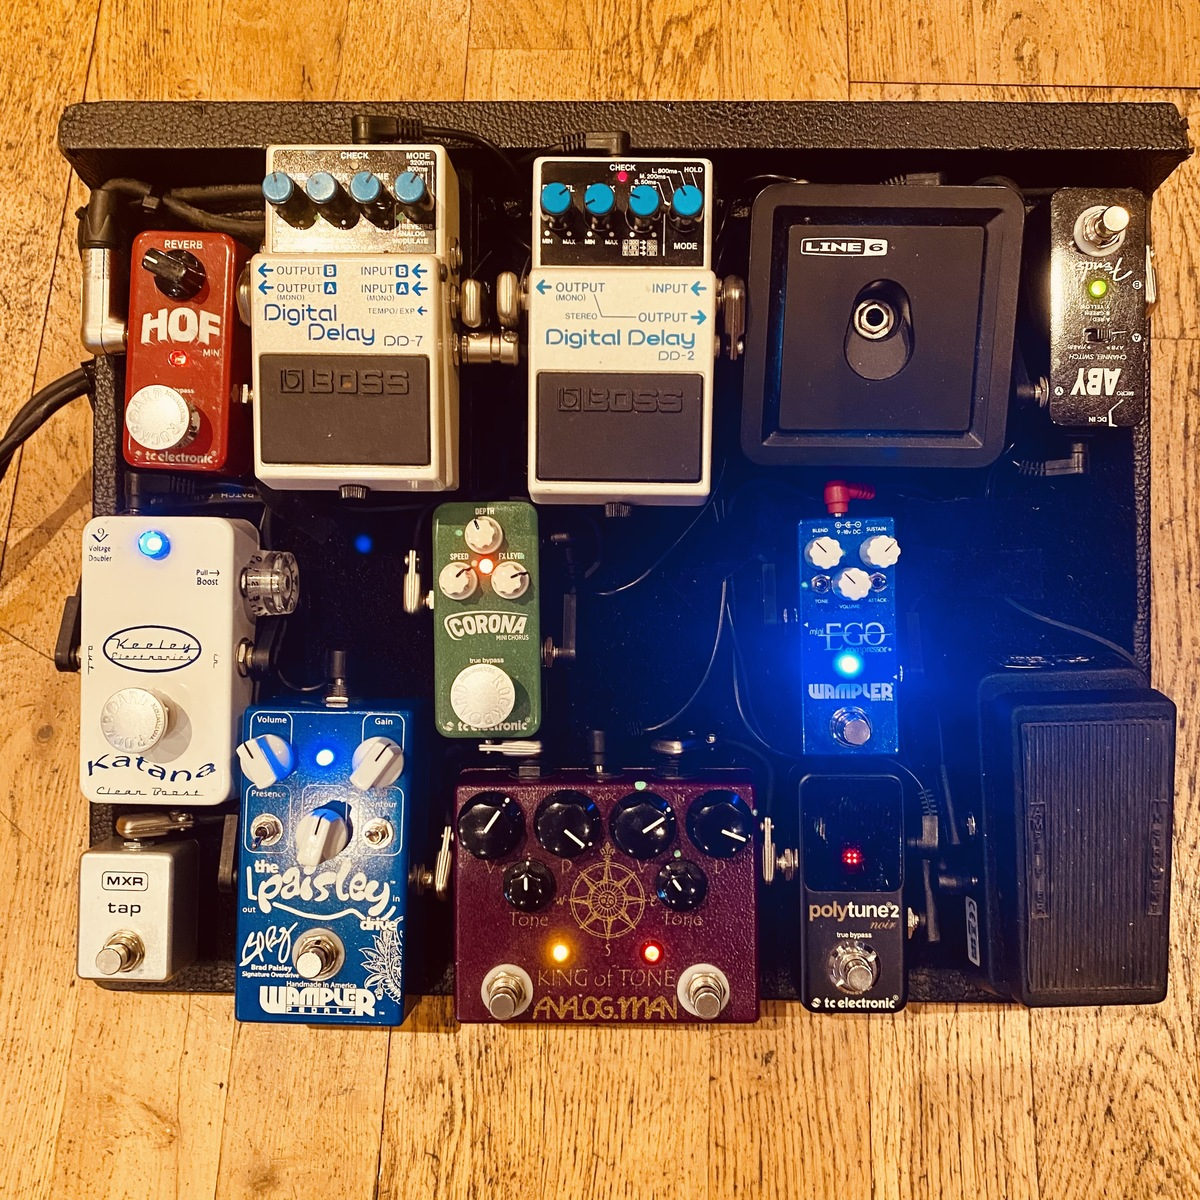 Photo of Analog Man King of Tone Overdrive and more gear